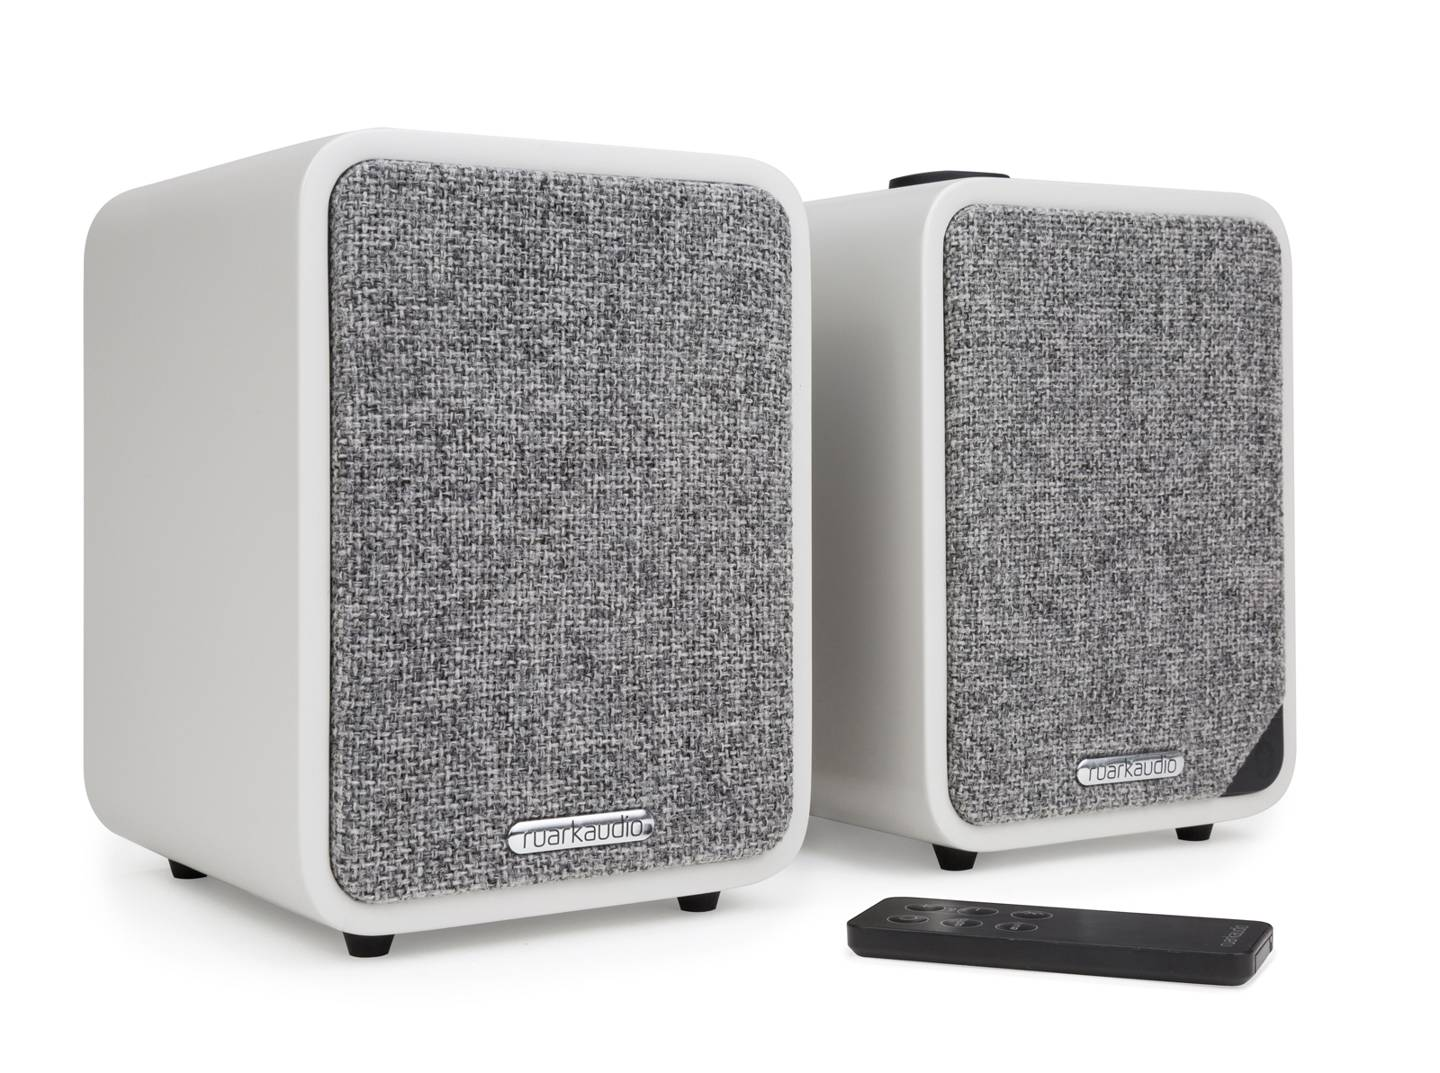 The best speakers for your home or office